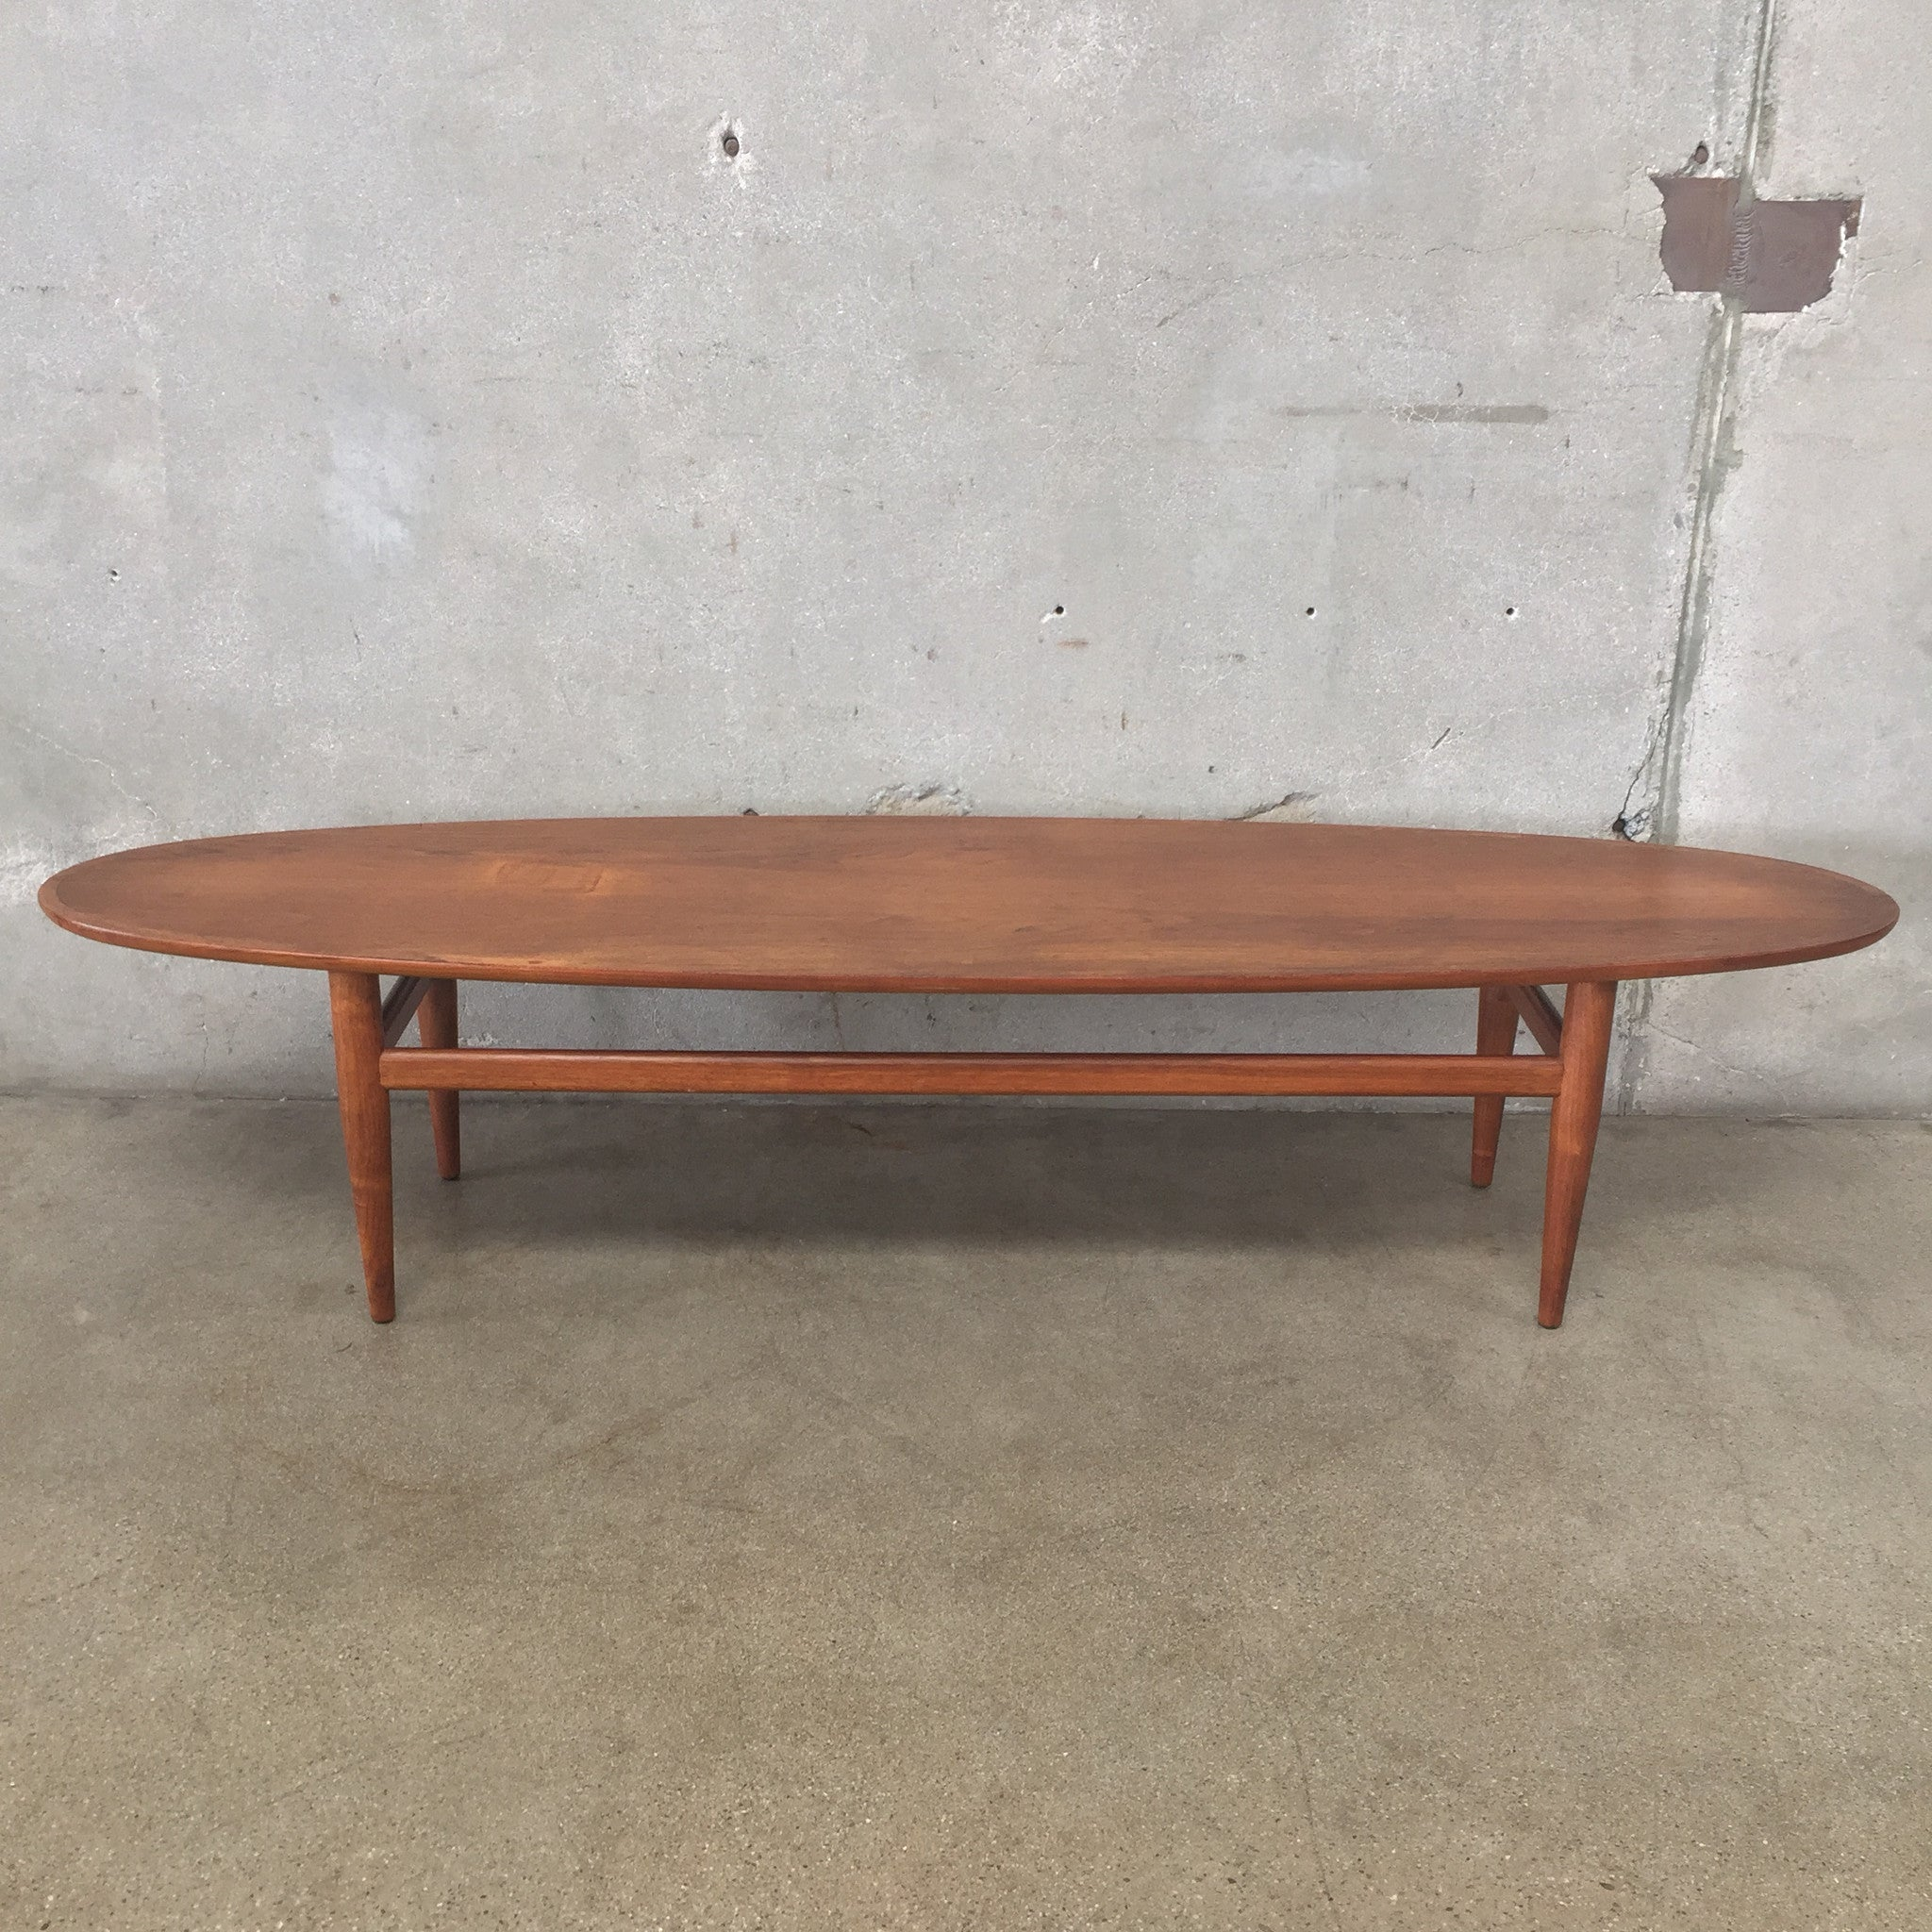 Heritage Mid Century Surfboard Coffee Table – UrbanAmericana